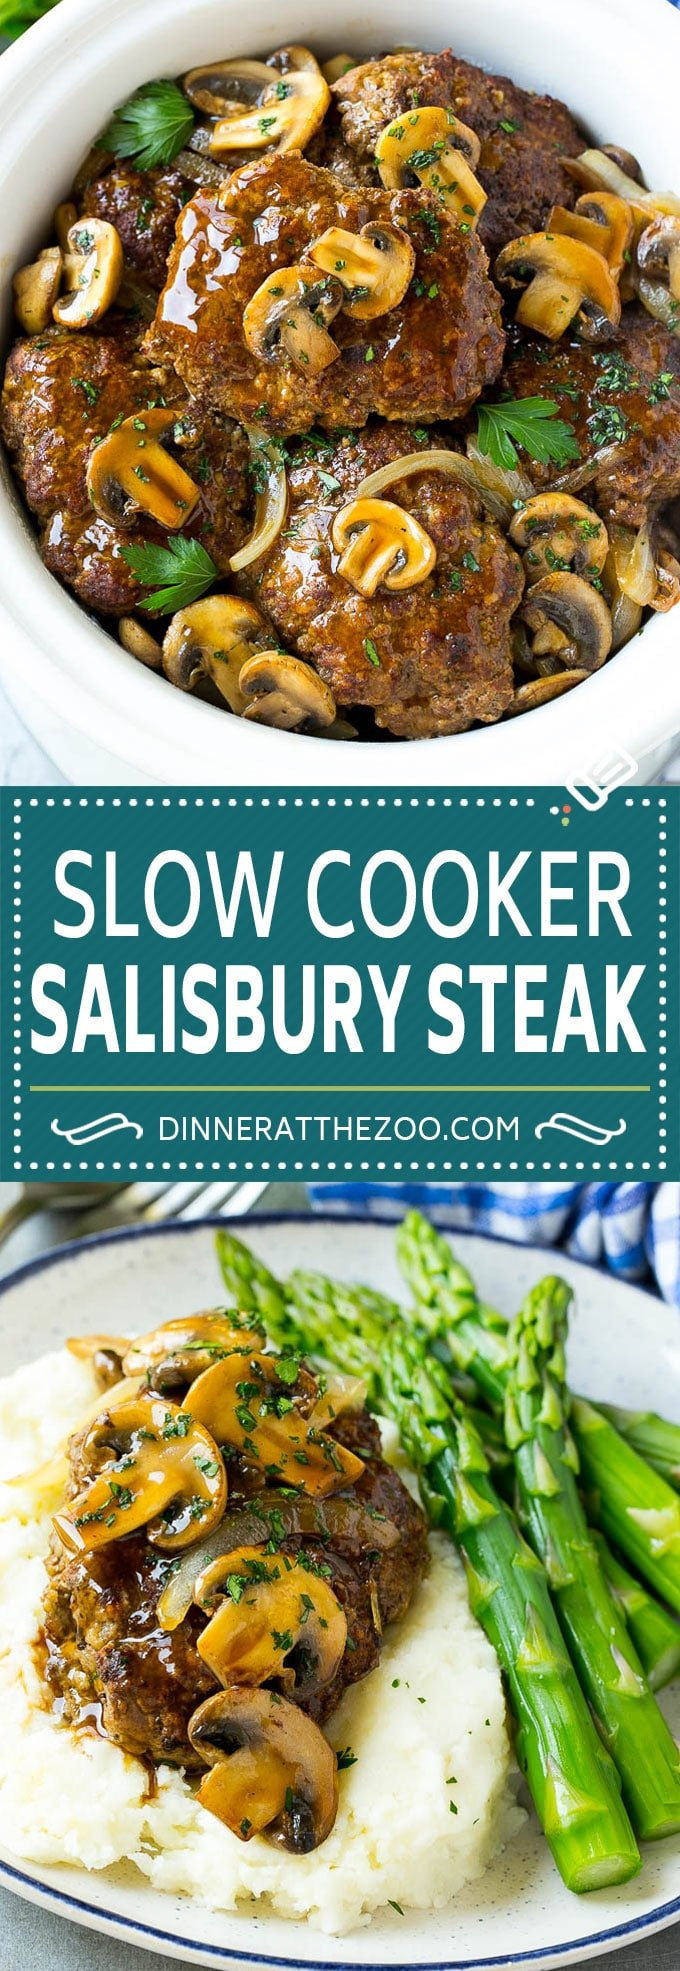 Slow Cooker Salisbury Steak Recipe | Homemade Salisbury Steak | Crock Pot Salisbury Steak #beef #mushrooms #dinner #dinneratthezoo #slowcooker #crockpot #comfortfood